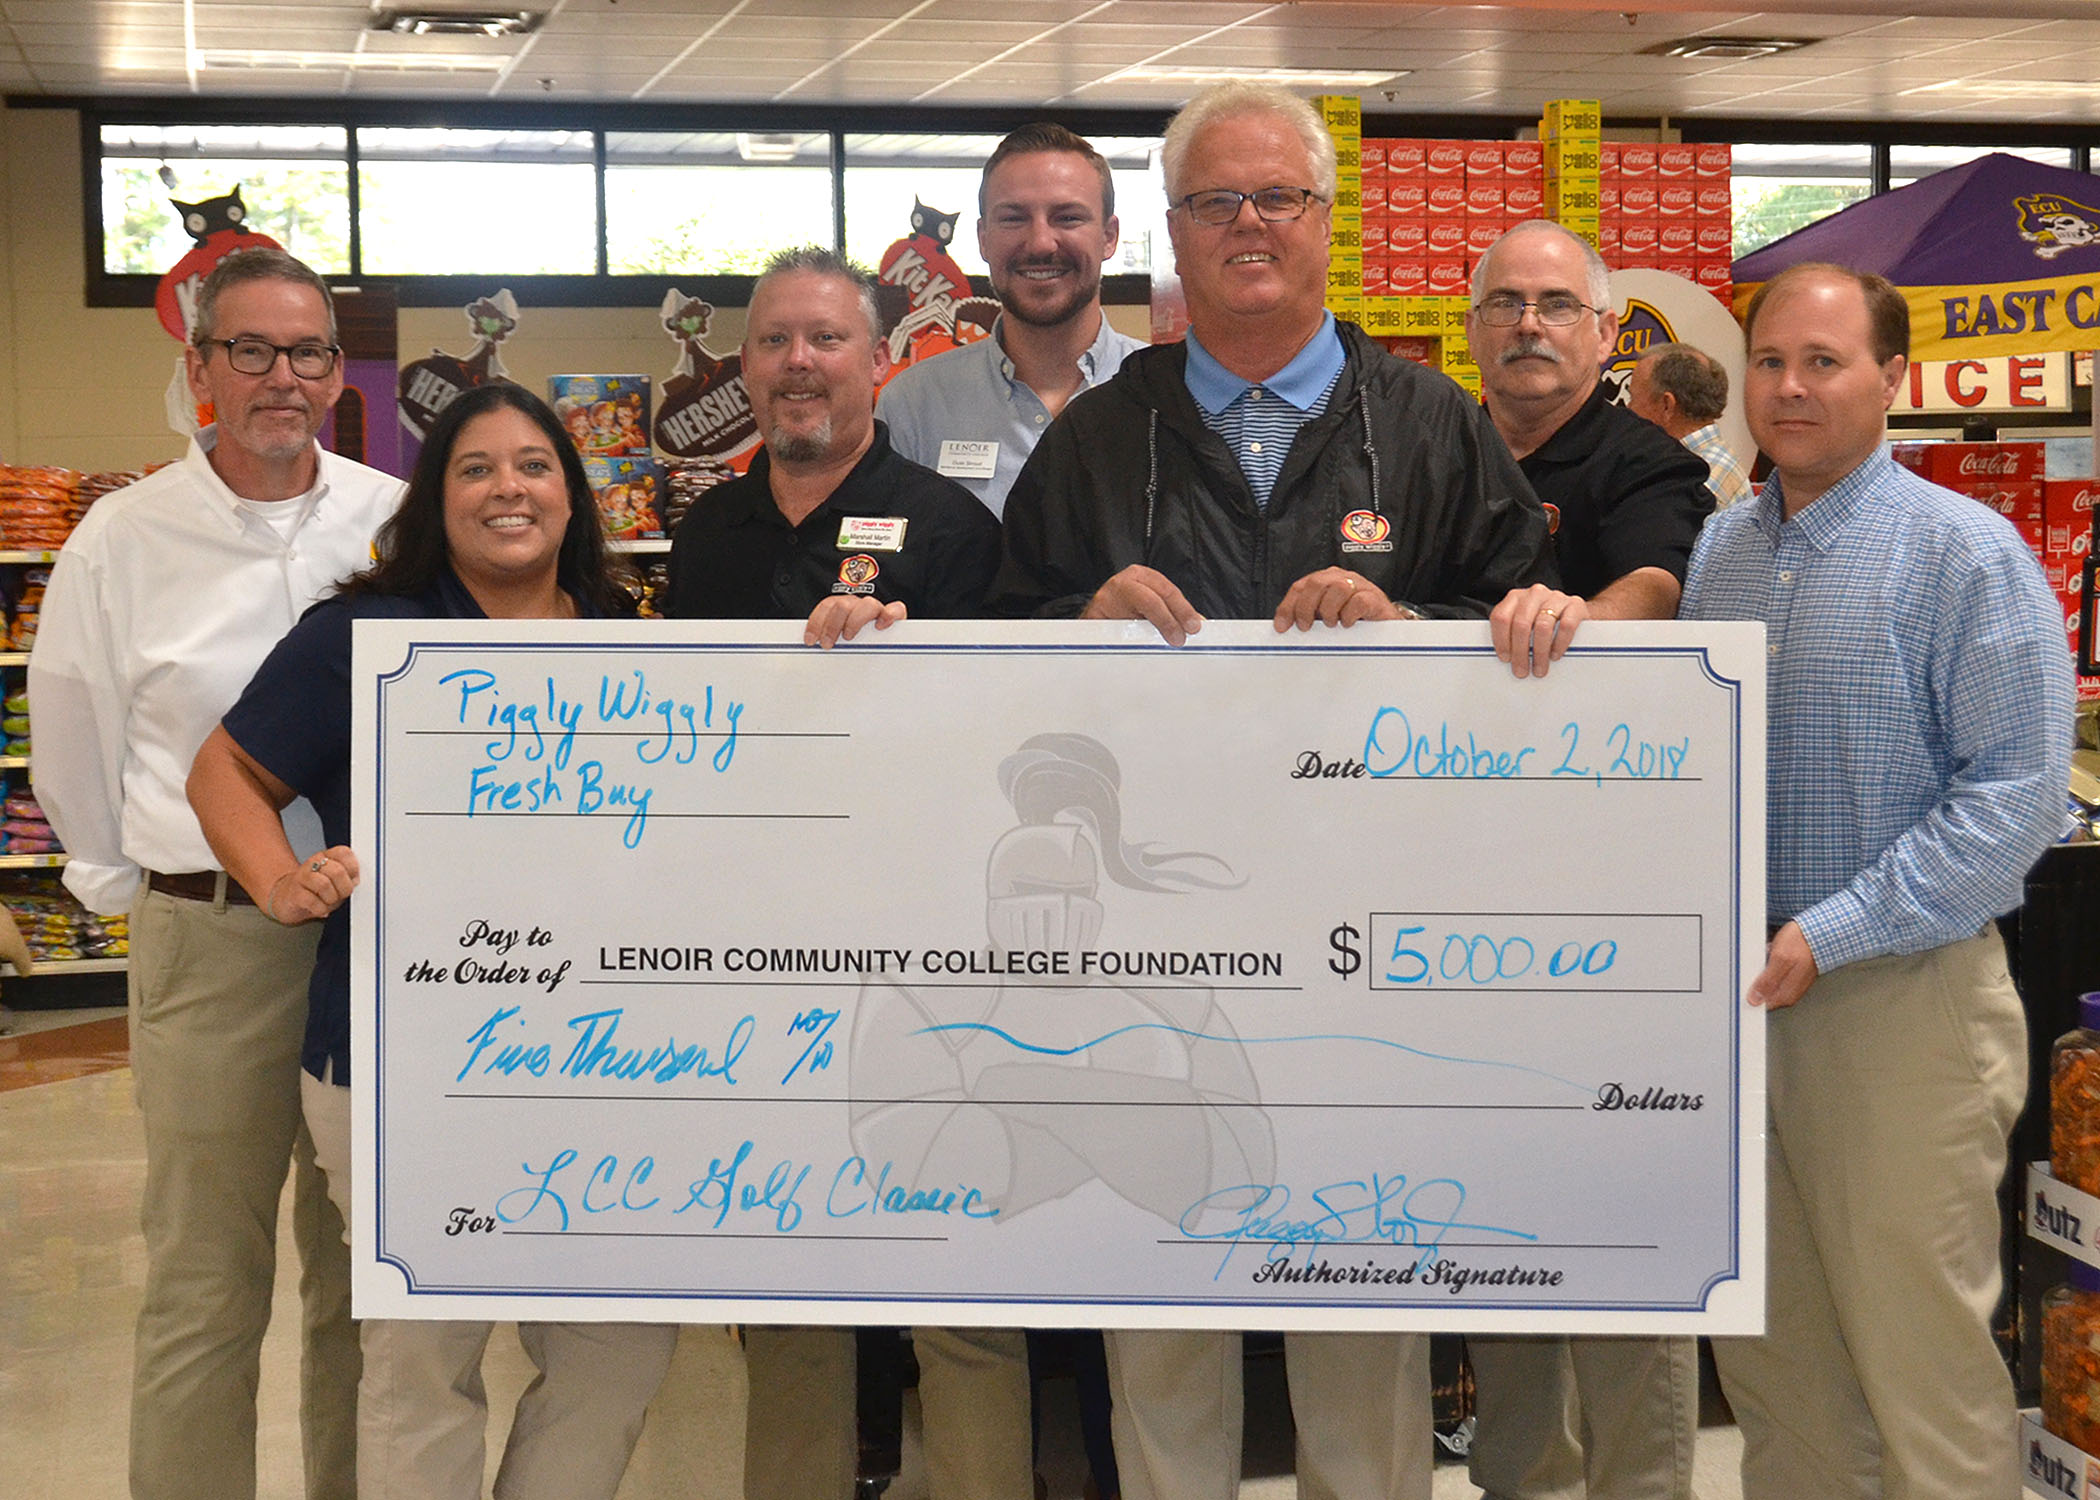 Pictured left to right are Nick Bartlett, Piggly Wiggly Fresh Buy Store Manager – Hwy 258, Katherine Pearson, LCC Development Coordinator, Marshall Martin, Piggly Wiggly Fresh Buy Store Manager – McLewean Street, Dusk Stroud, LCC Workforce Development Coordinator, Jonathan McLawhorn, Piggly Wiggly Fresh Buy Store Manager – Herritage Street, Jeff Lane, Piggly Wiggly Fresh Buy Store Manager – Herritage Street and Greg Floyd, Piggly Wiggly Fresh Buy Store Owner – Hwy 258, McLewean Street and Herritage Street.